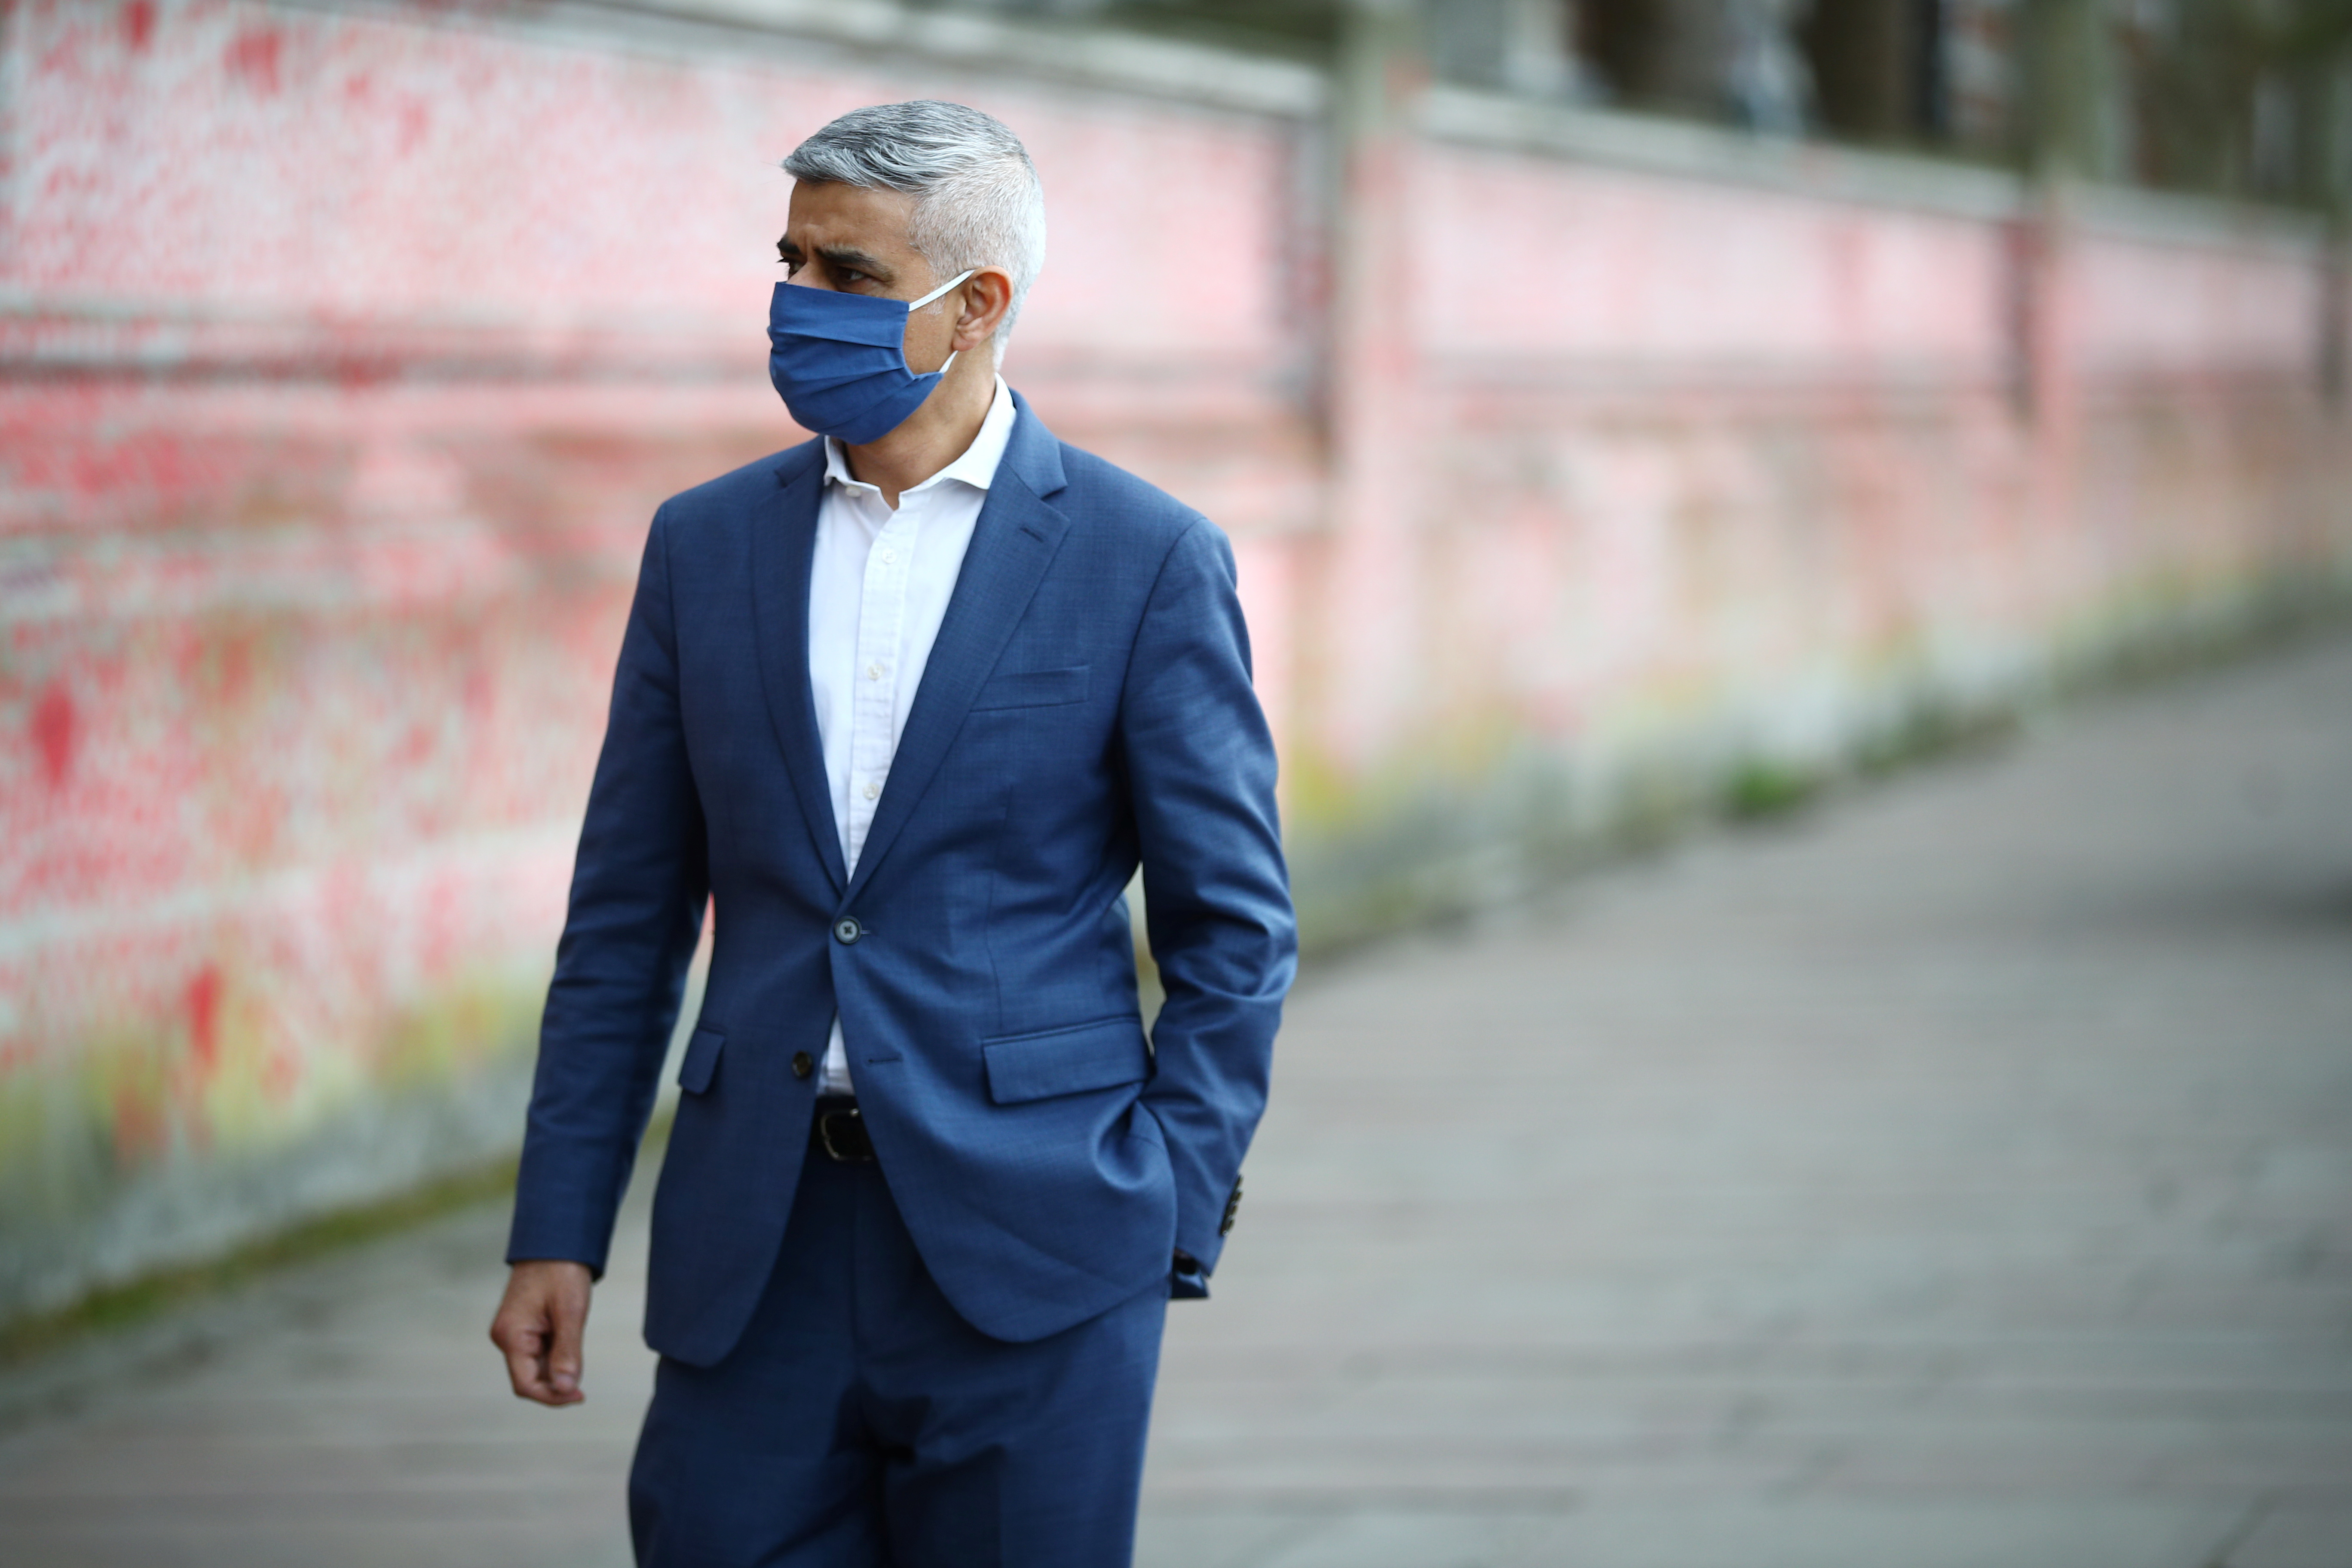 Mayor of London Sadiq Khan walks by  the National Covid Memorial wall beside St Thomas' hospital set as a memorial to all those who have died so far in the UK from the coronavirus disease (COVID-19), amid the coronavirus pandemic in London, Britain April 8, 2021. REUTERS/Hannah McKay